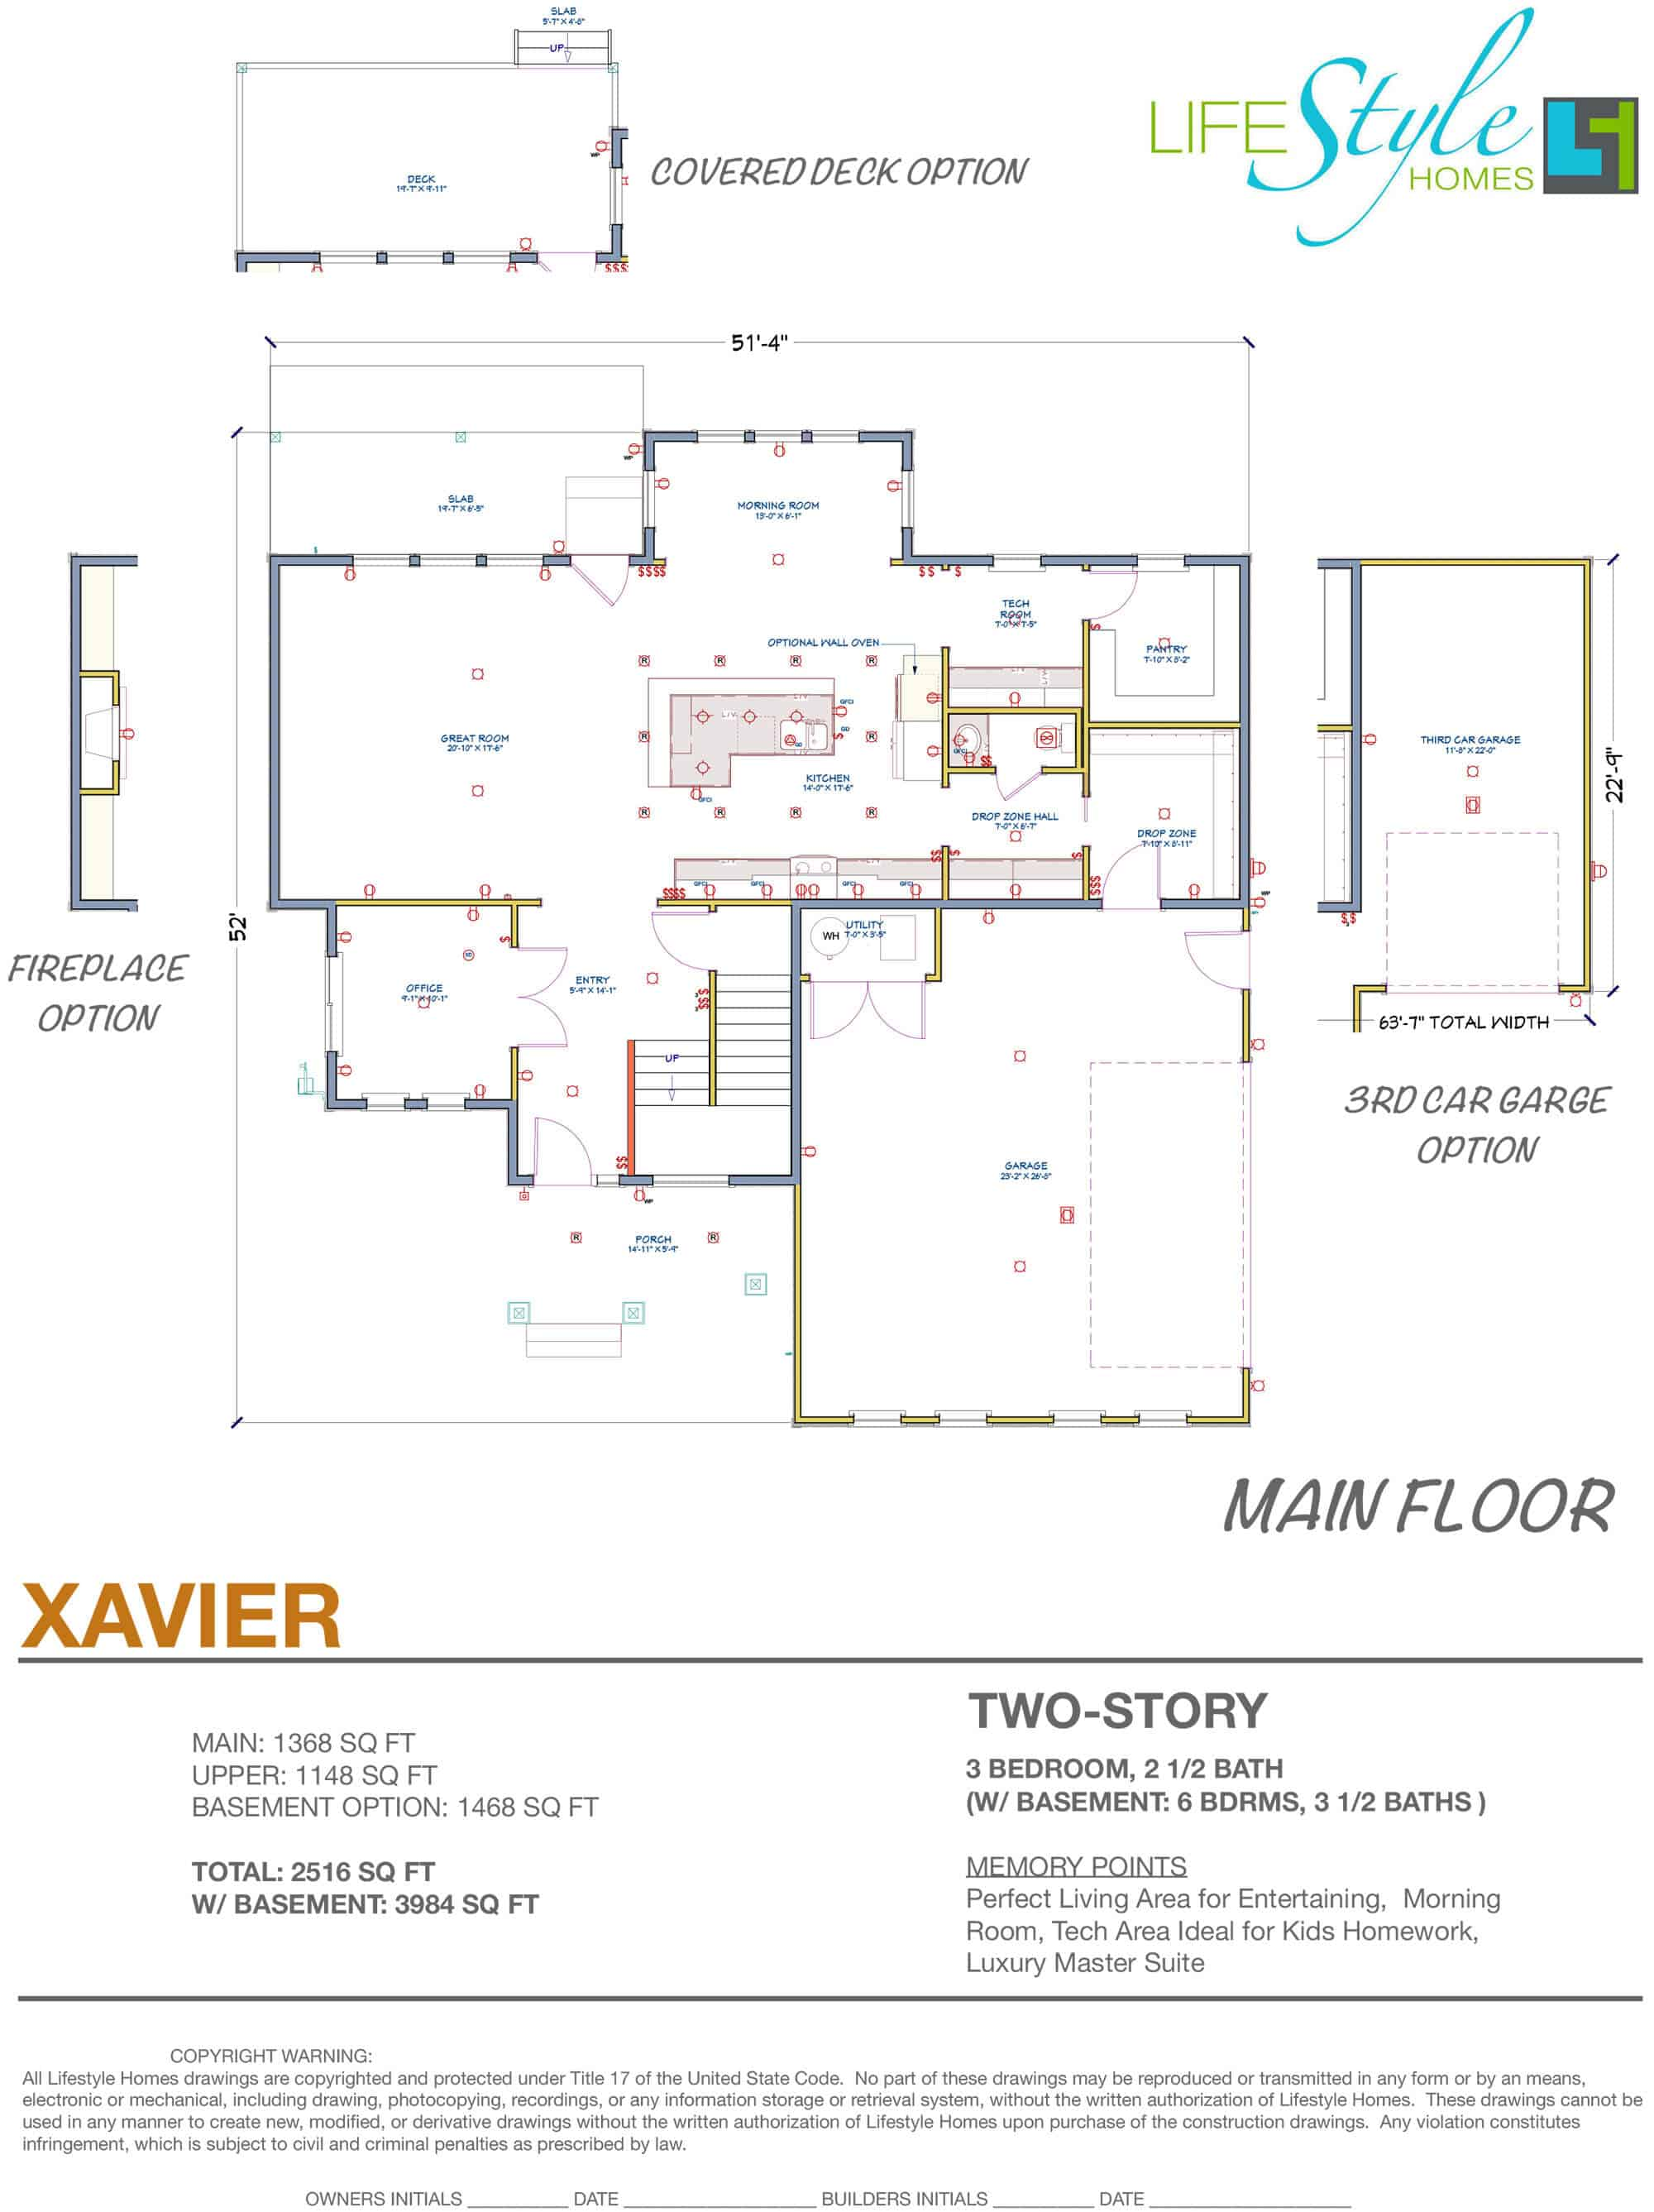 xavier floor plan